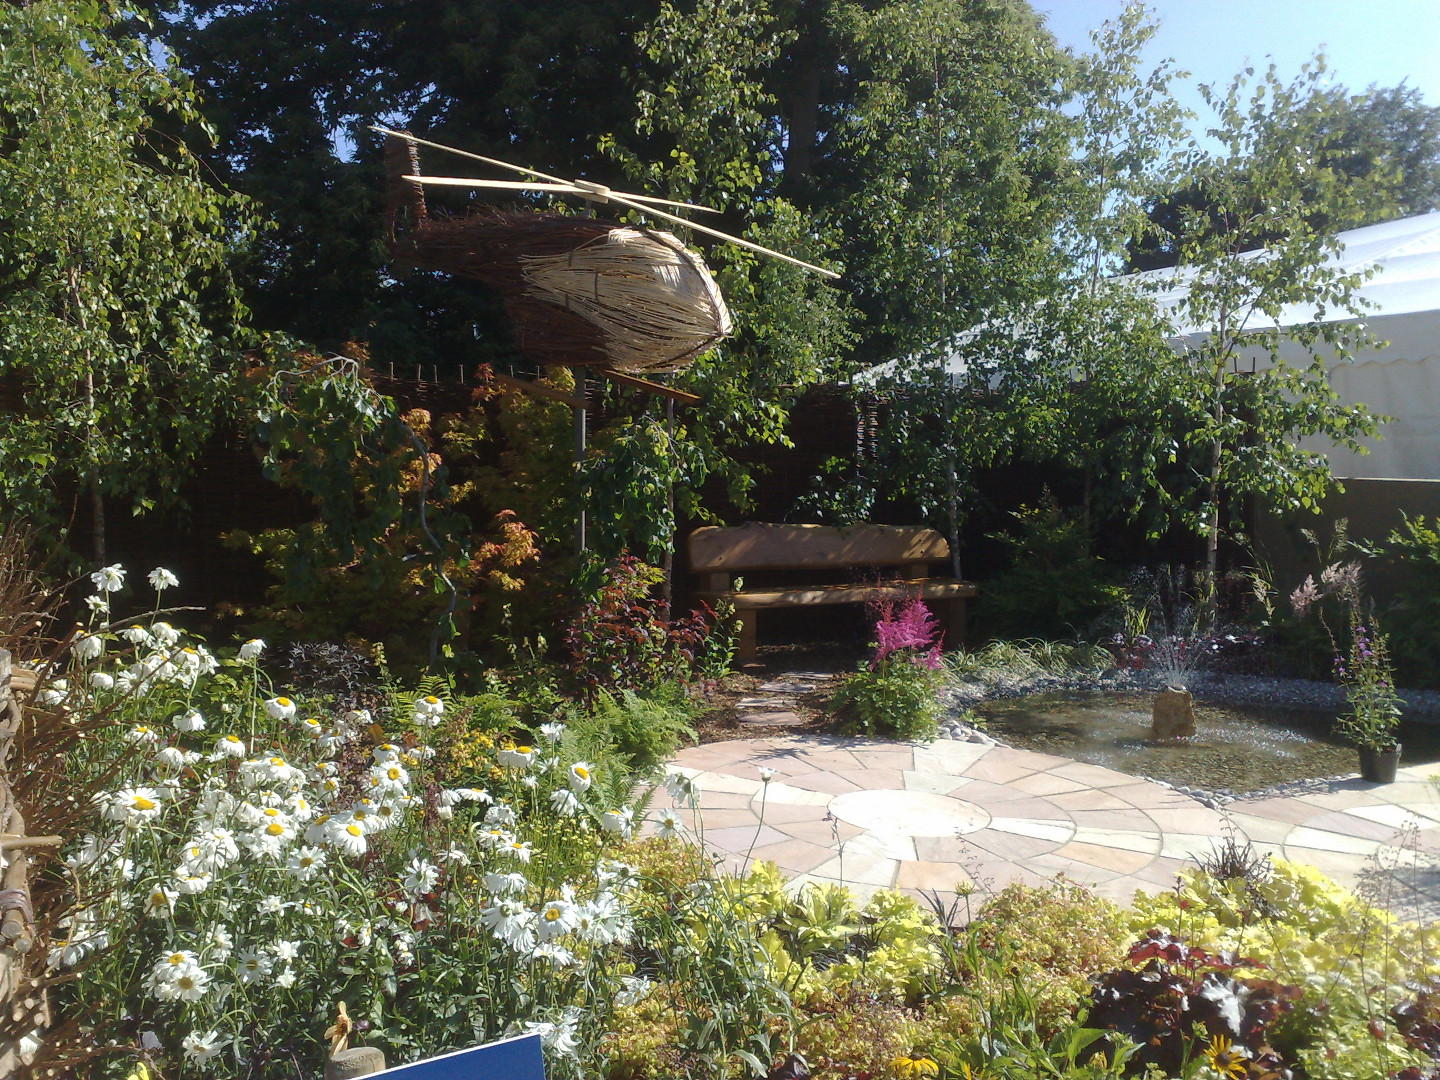 Willow helicopter in garden